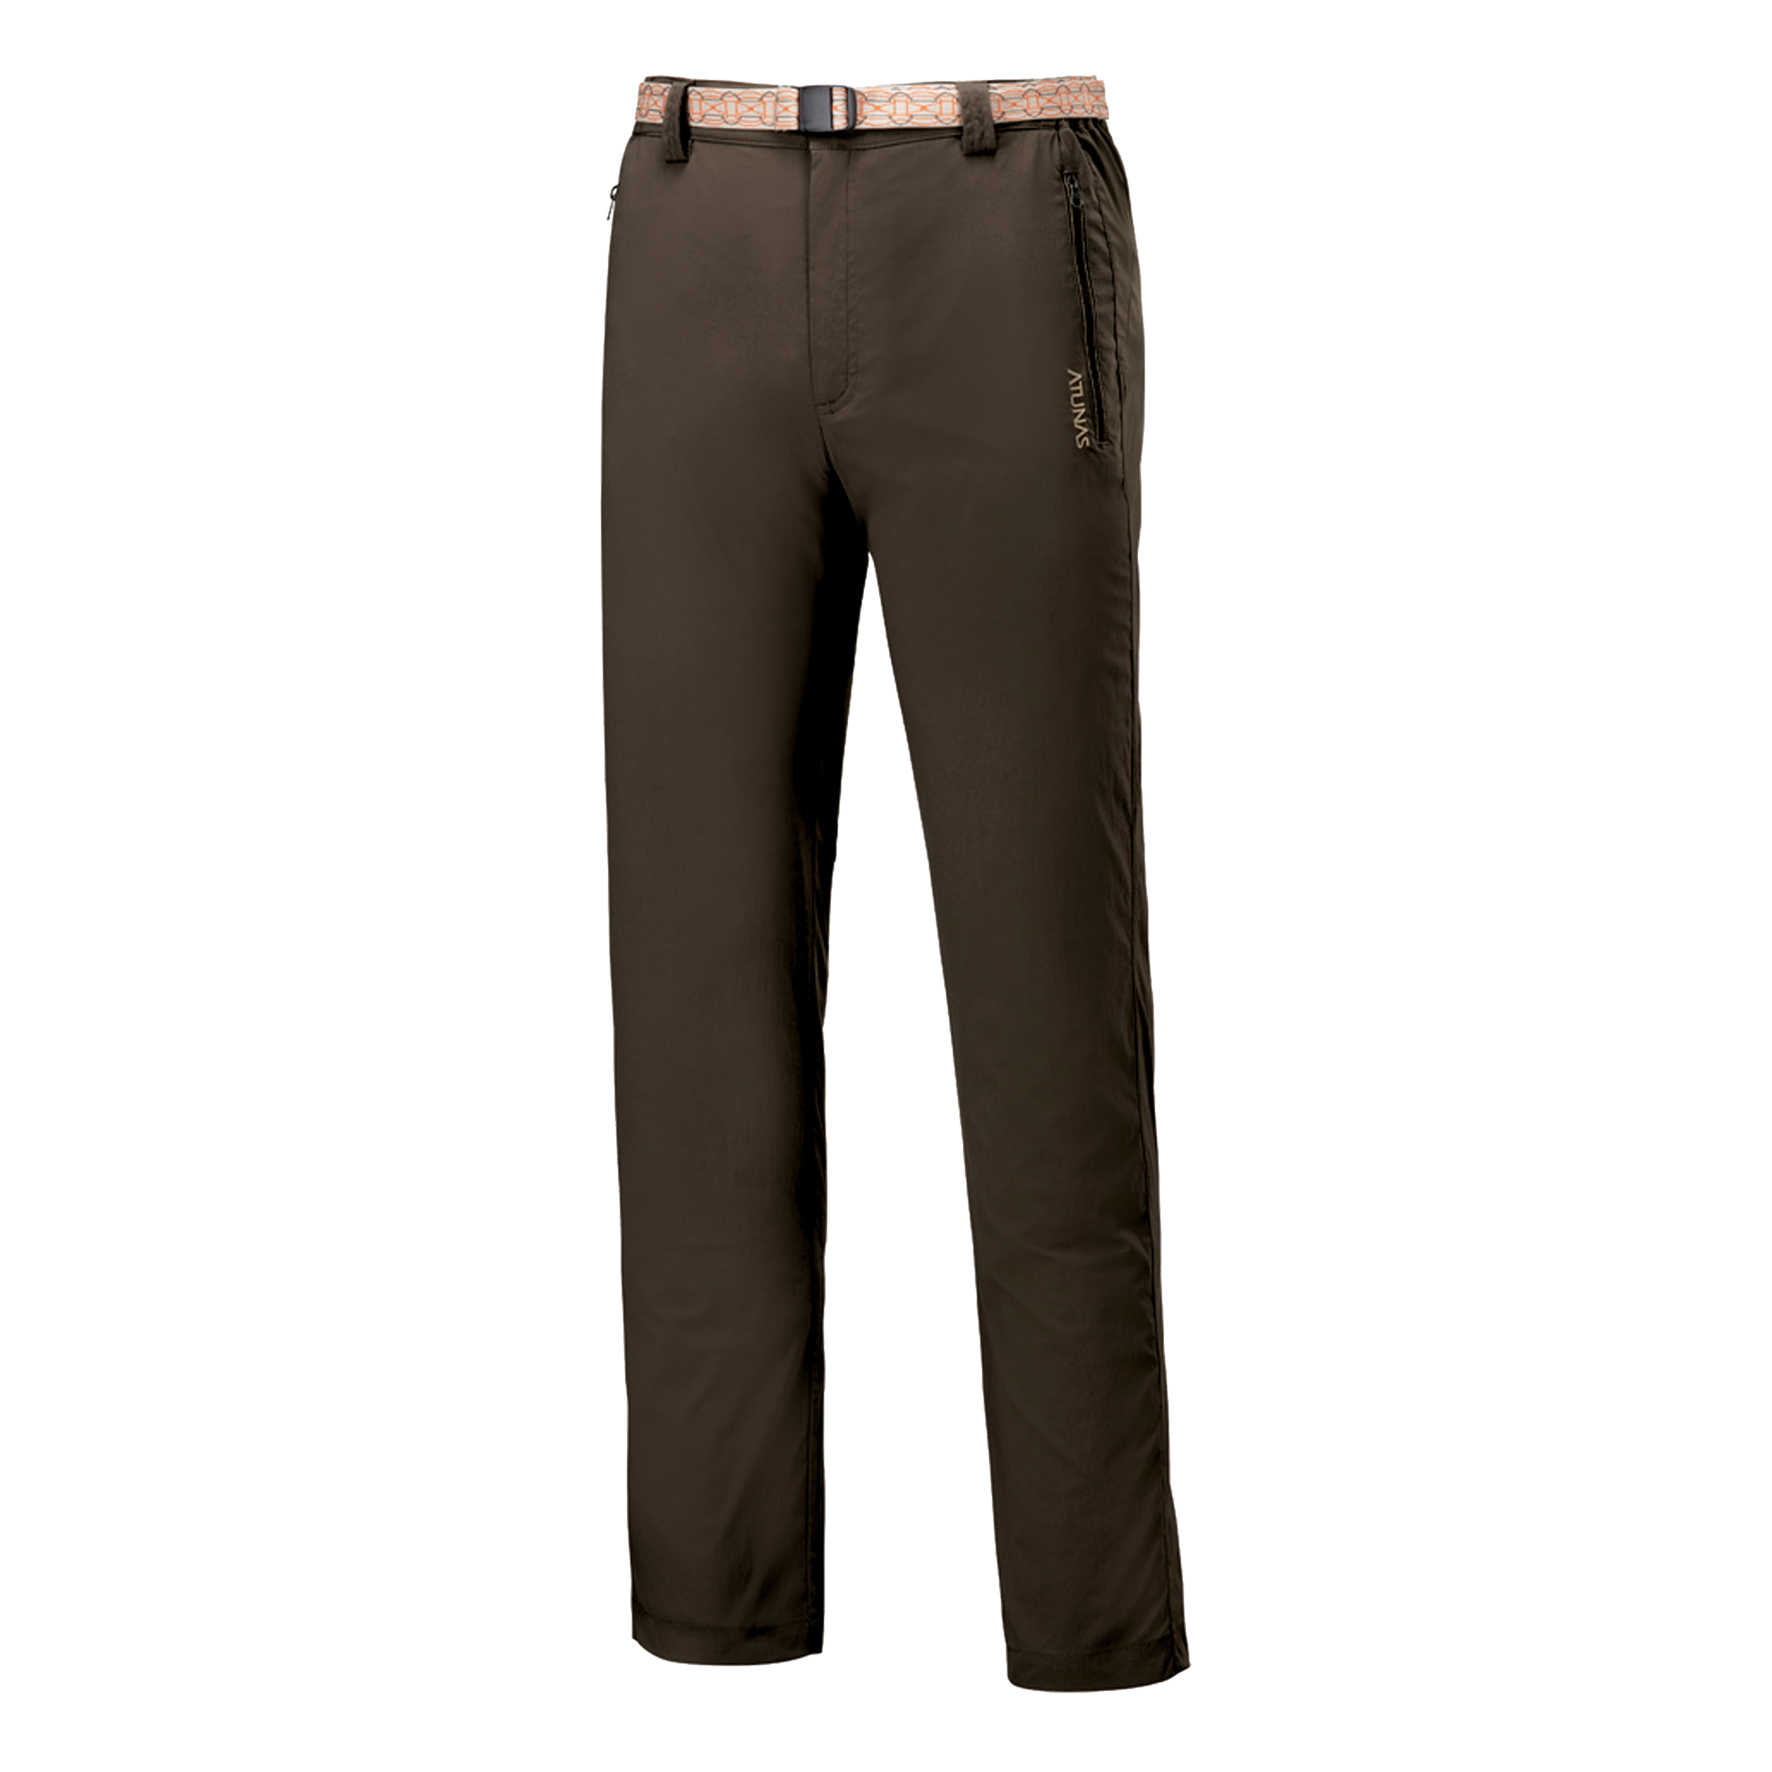 SUN OWN INDUSTRIAL CO., LTD.-Atunas Insect Repellent Pants